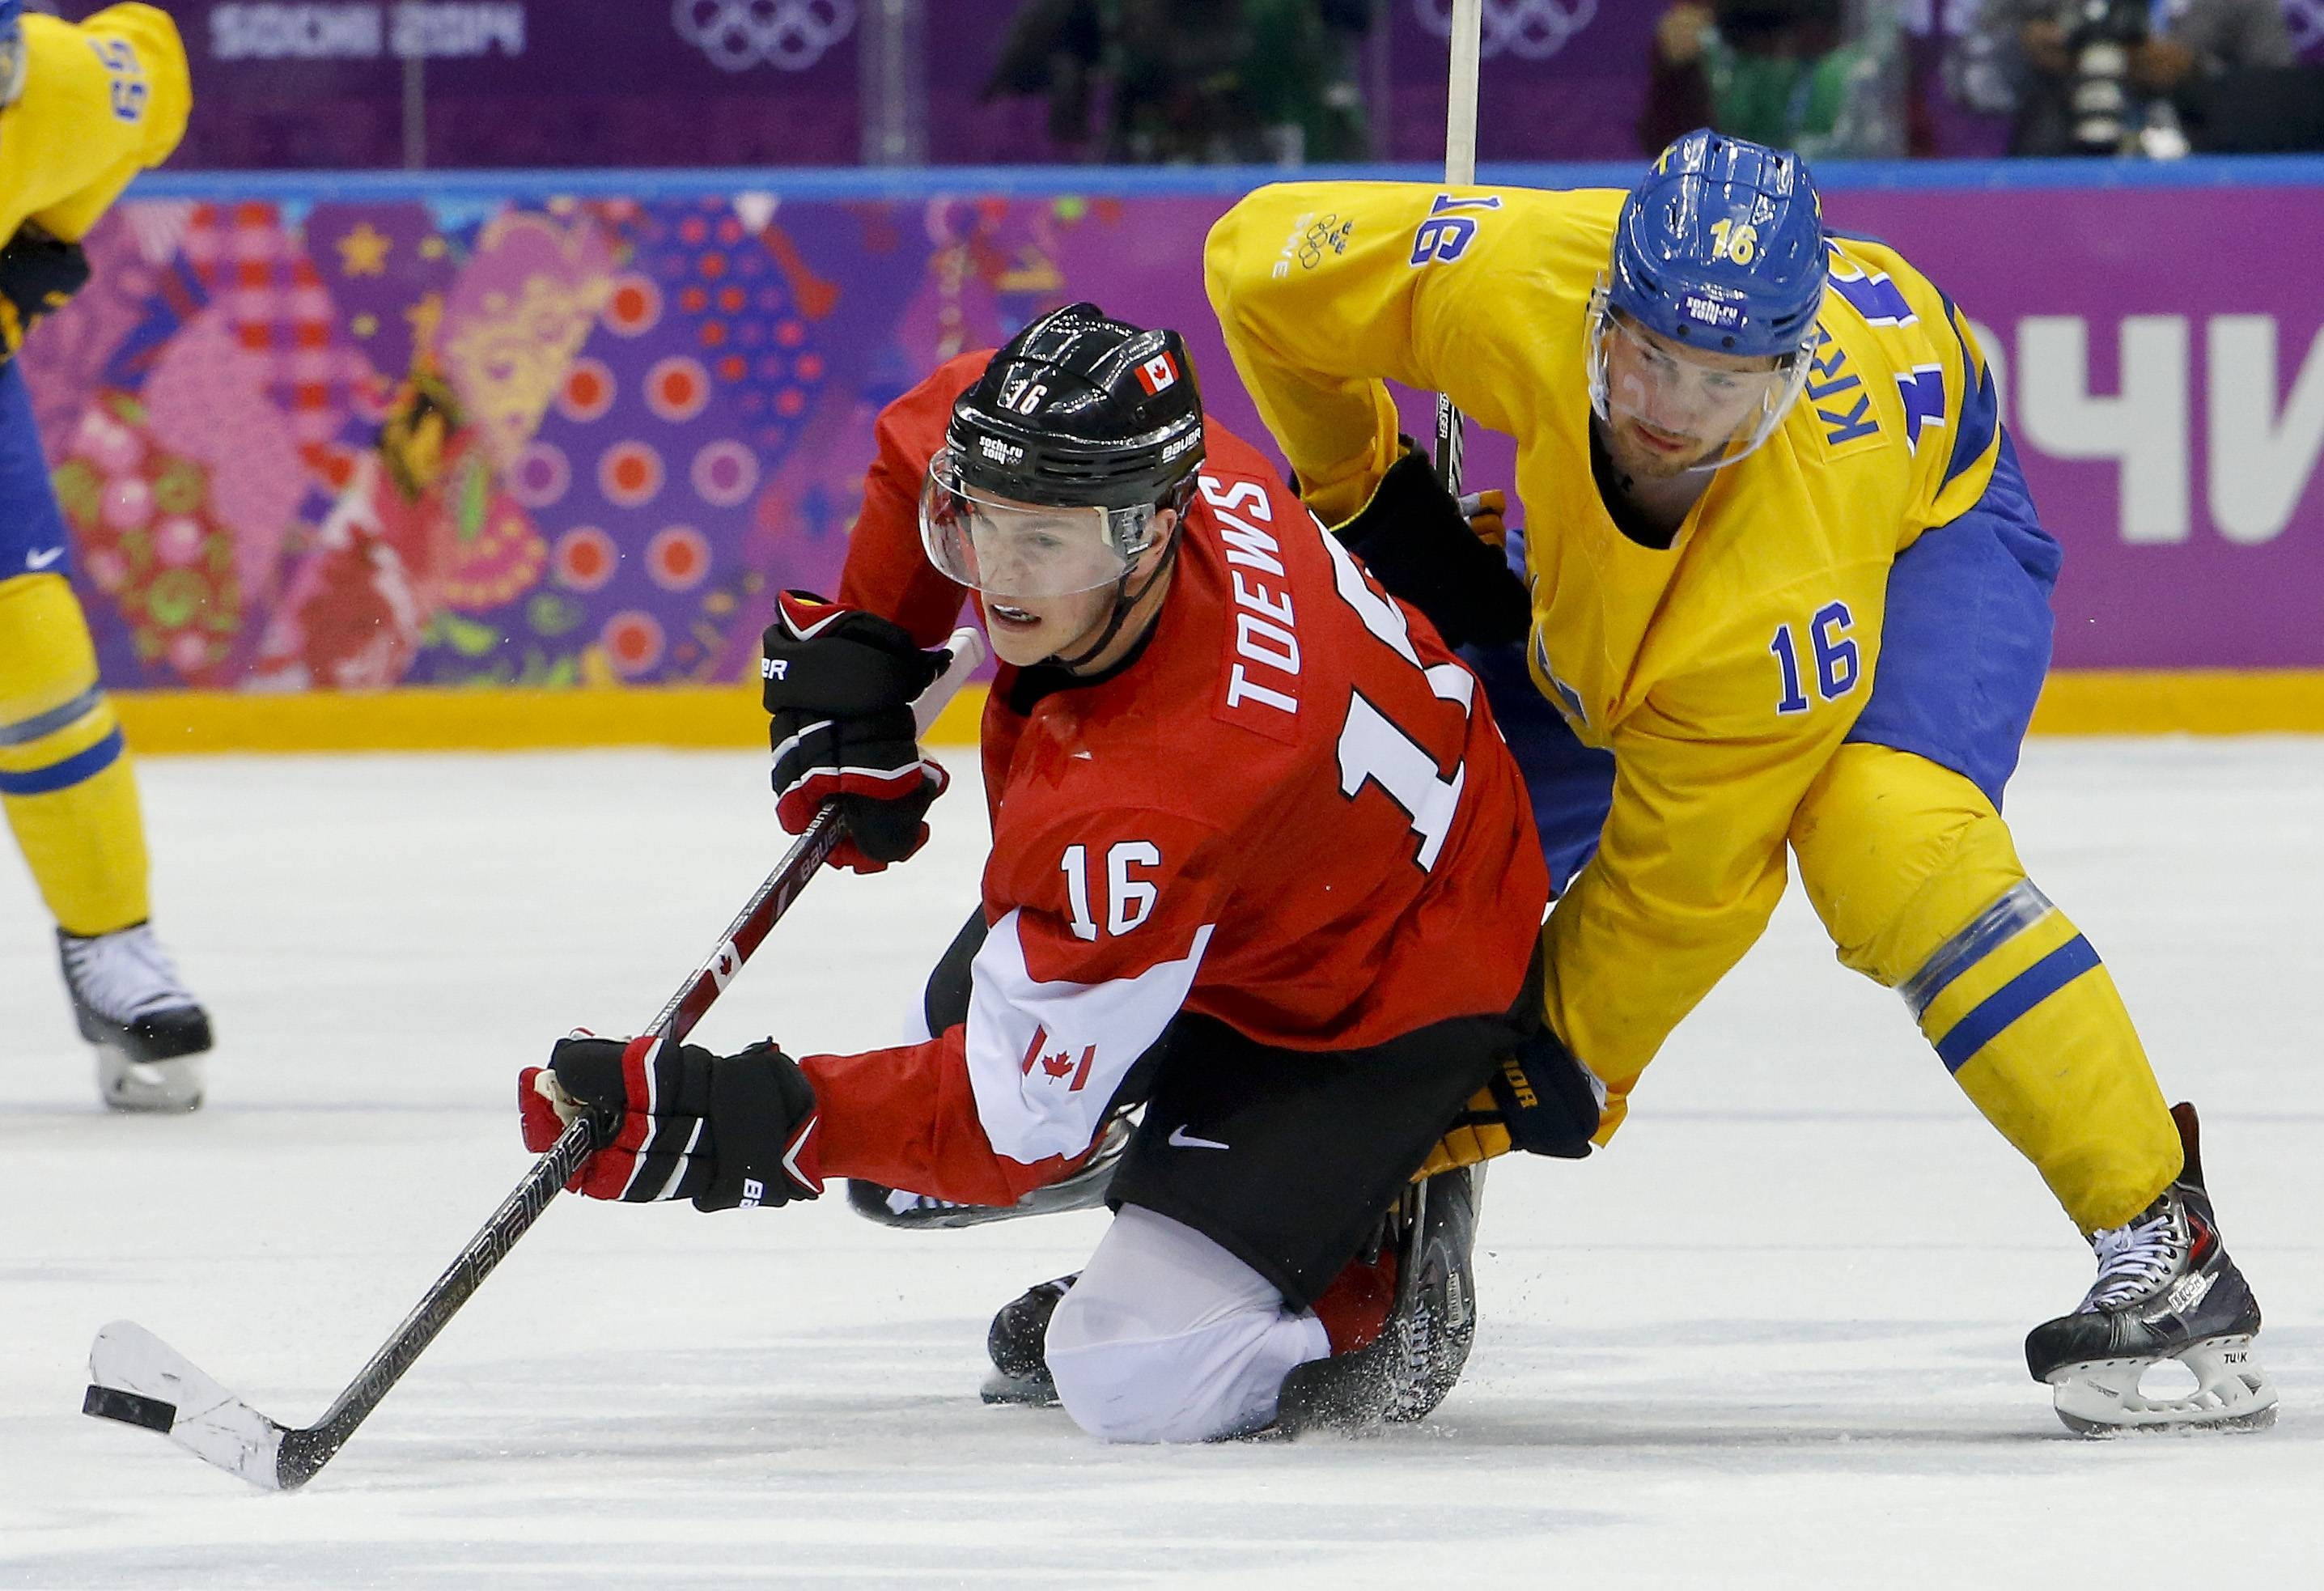 Canada forward Jonathan Toews gets a pass off against Sweden forward Marcus Kruger during the second period of the men's gold medal ice hockey game at the 2014 Winter Olympics, Sunday, Feb. 23, 2014, in Sochi, Russia.